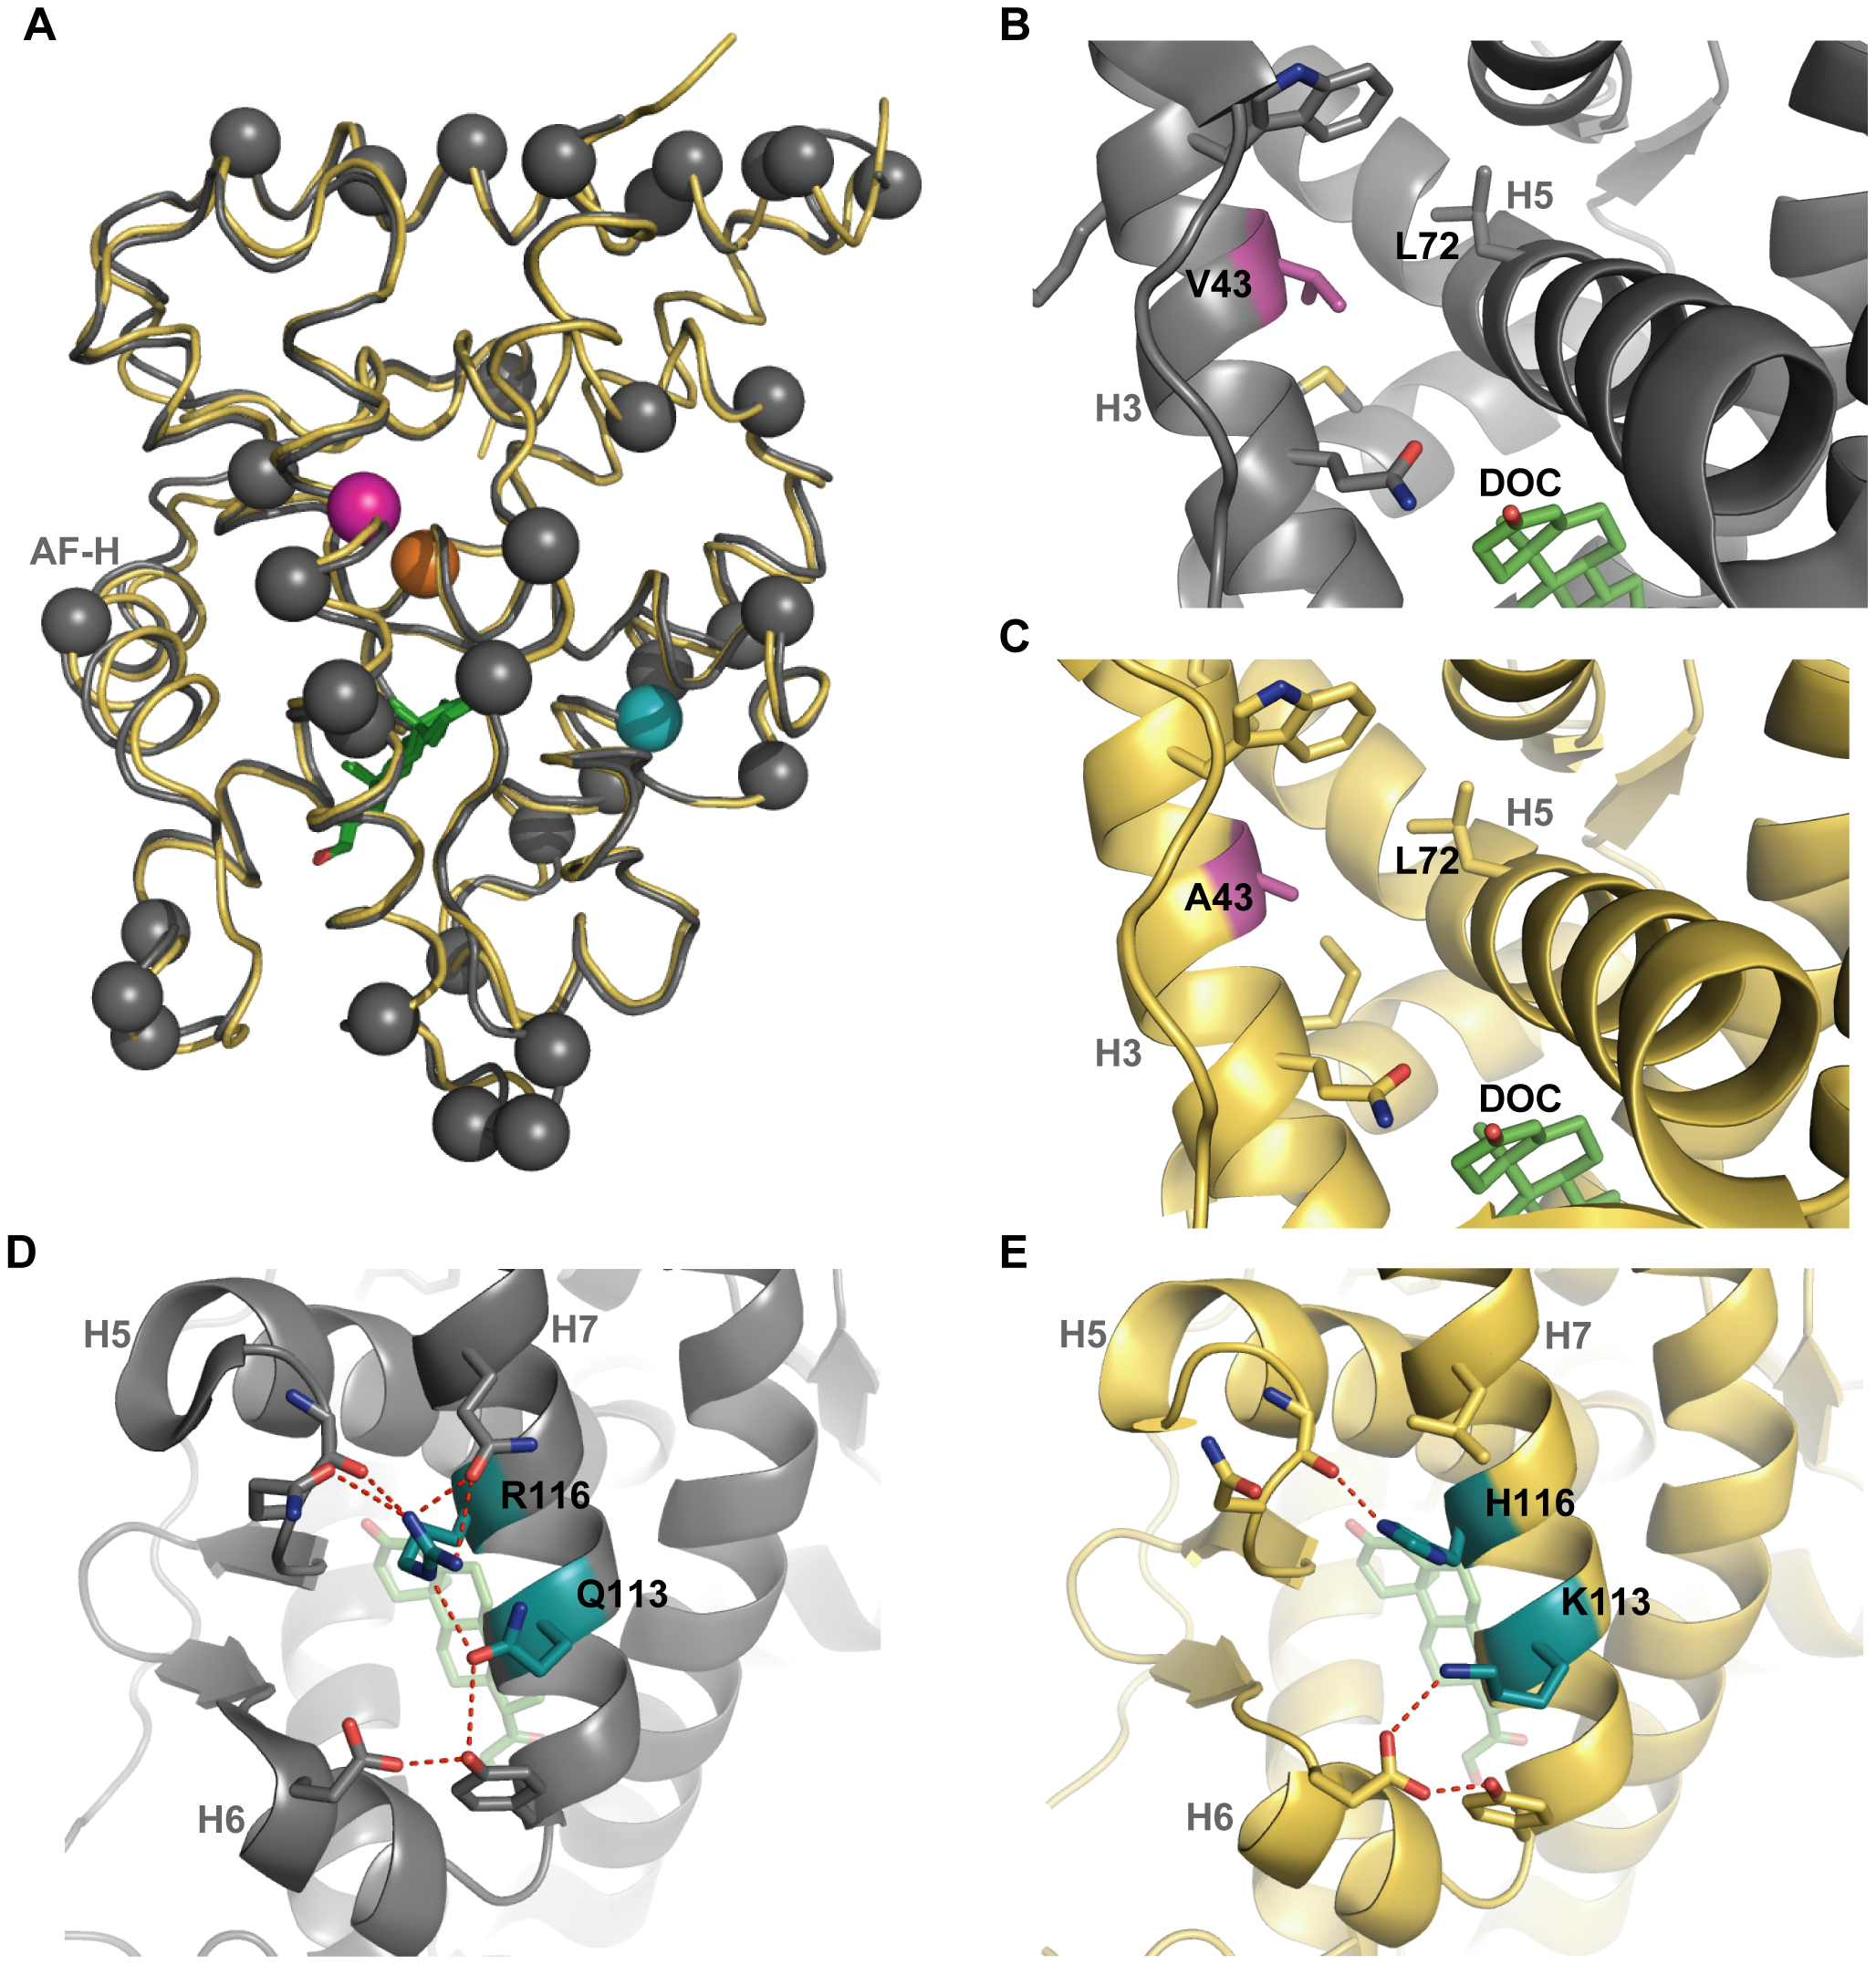 The crystal structure of AncGR1.1-LBD in complex with DOC (yellow, PDB 3RY9) compared to the previously solved structure of AncCR with DOC (gray, PDB 2Q3Y).